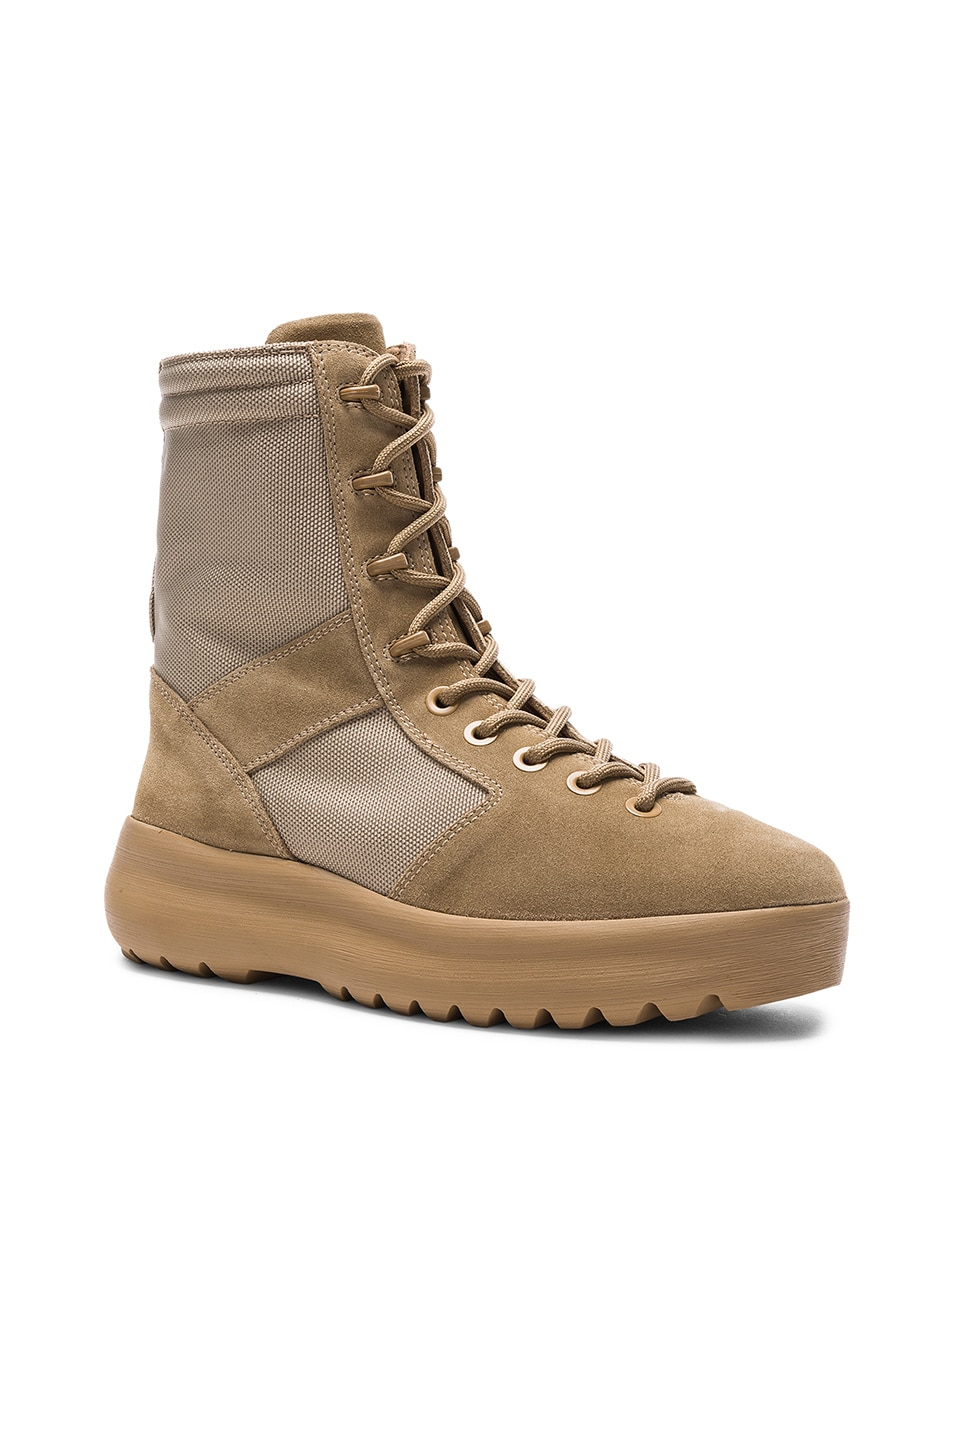 26af3f42f9469 Image 1 of YEEZY Season 3 Military Boots in Rock